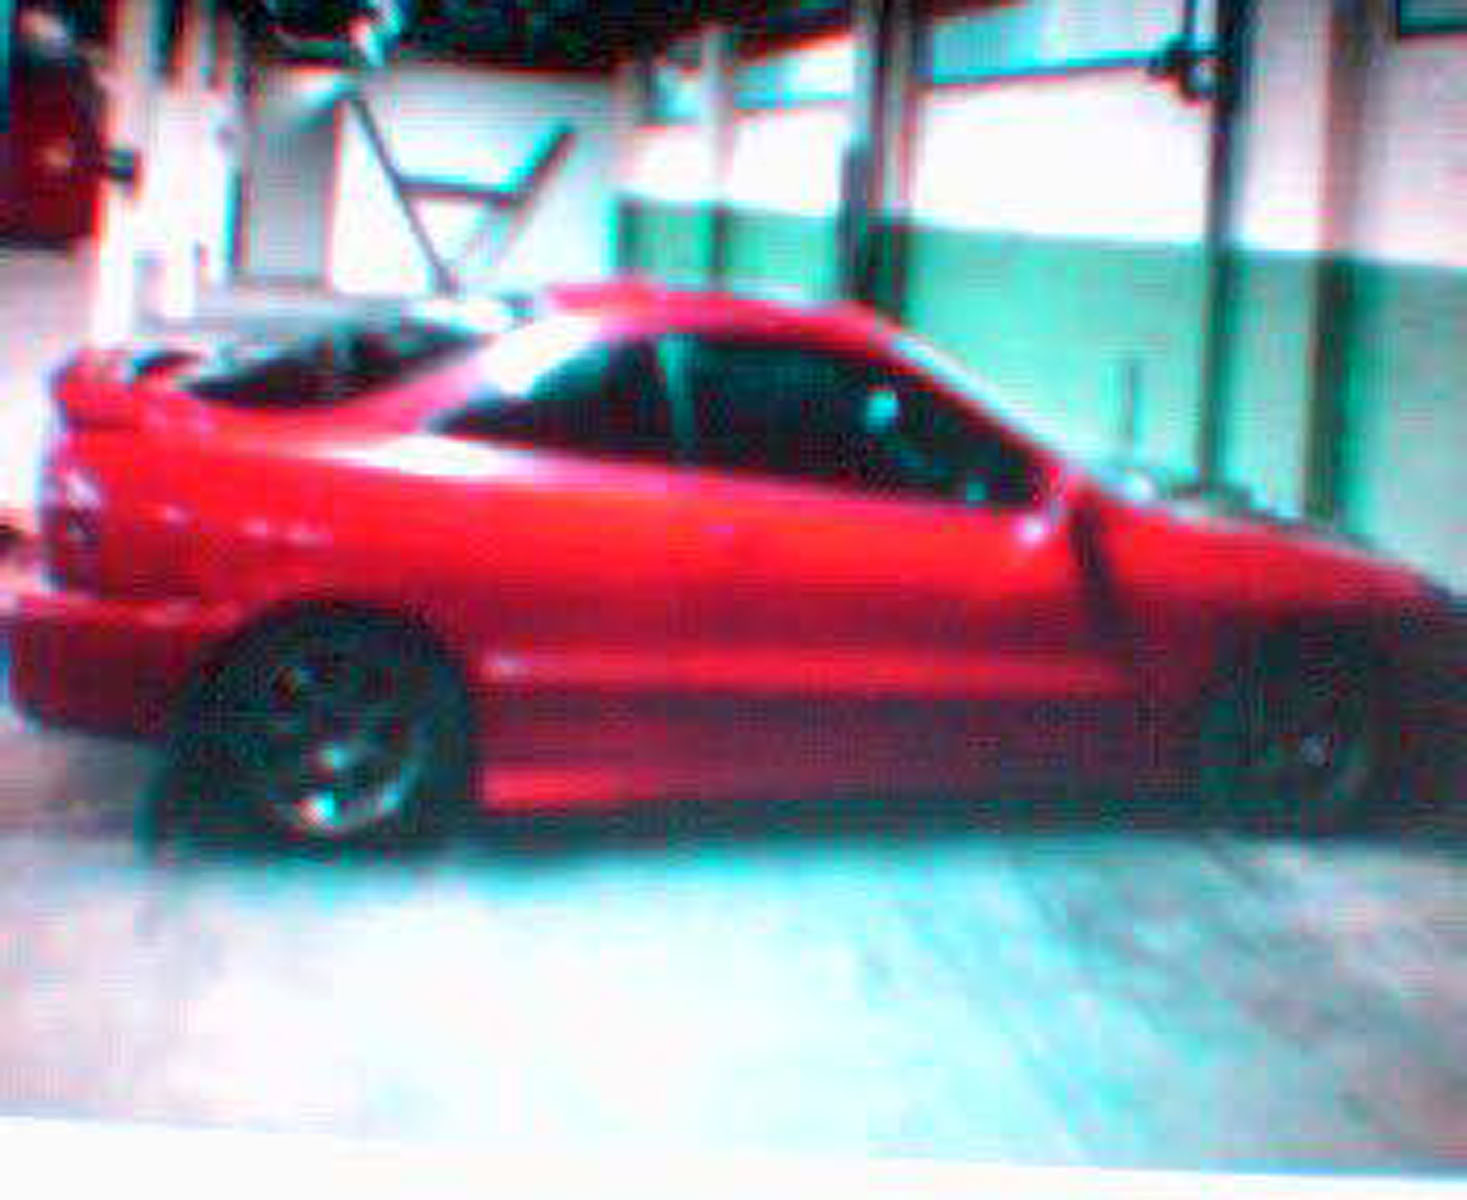 1994 Acura Integra Gs-R Turbo [Integra] gsr turbo For Sale | Lincoln ...